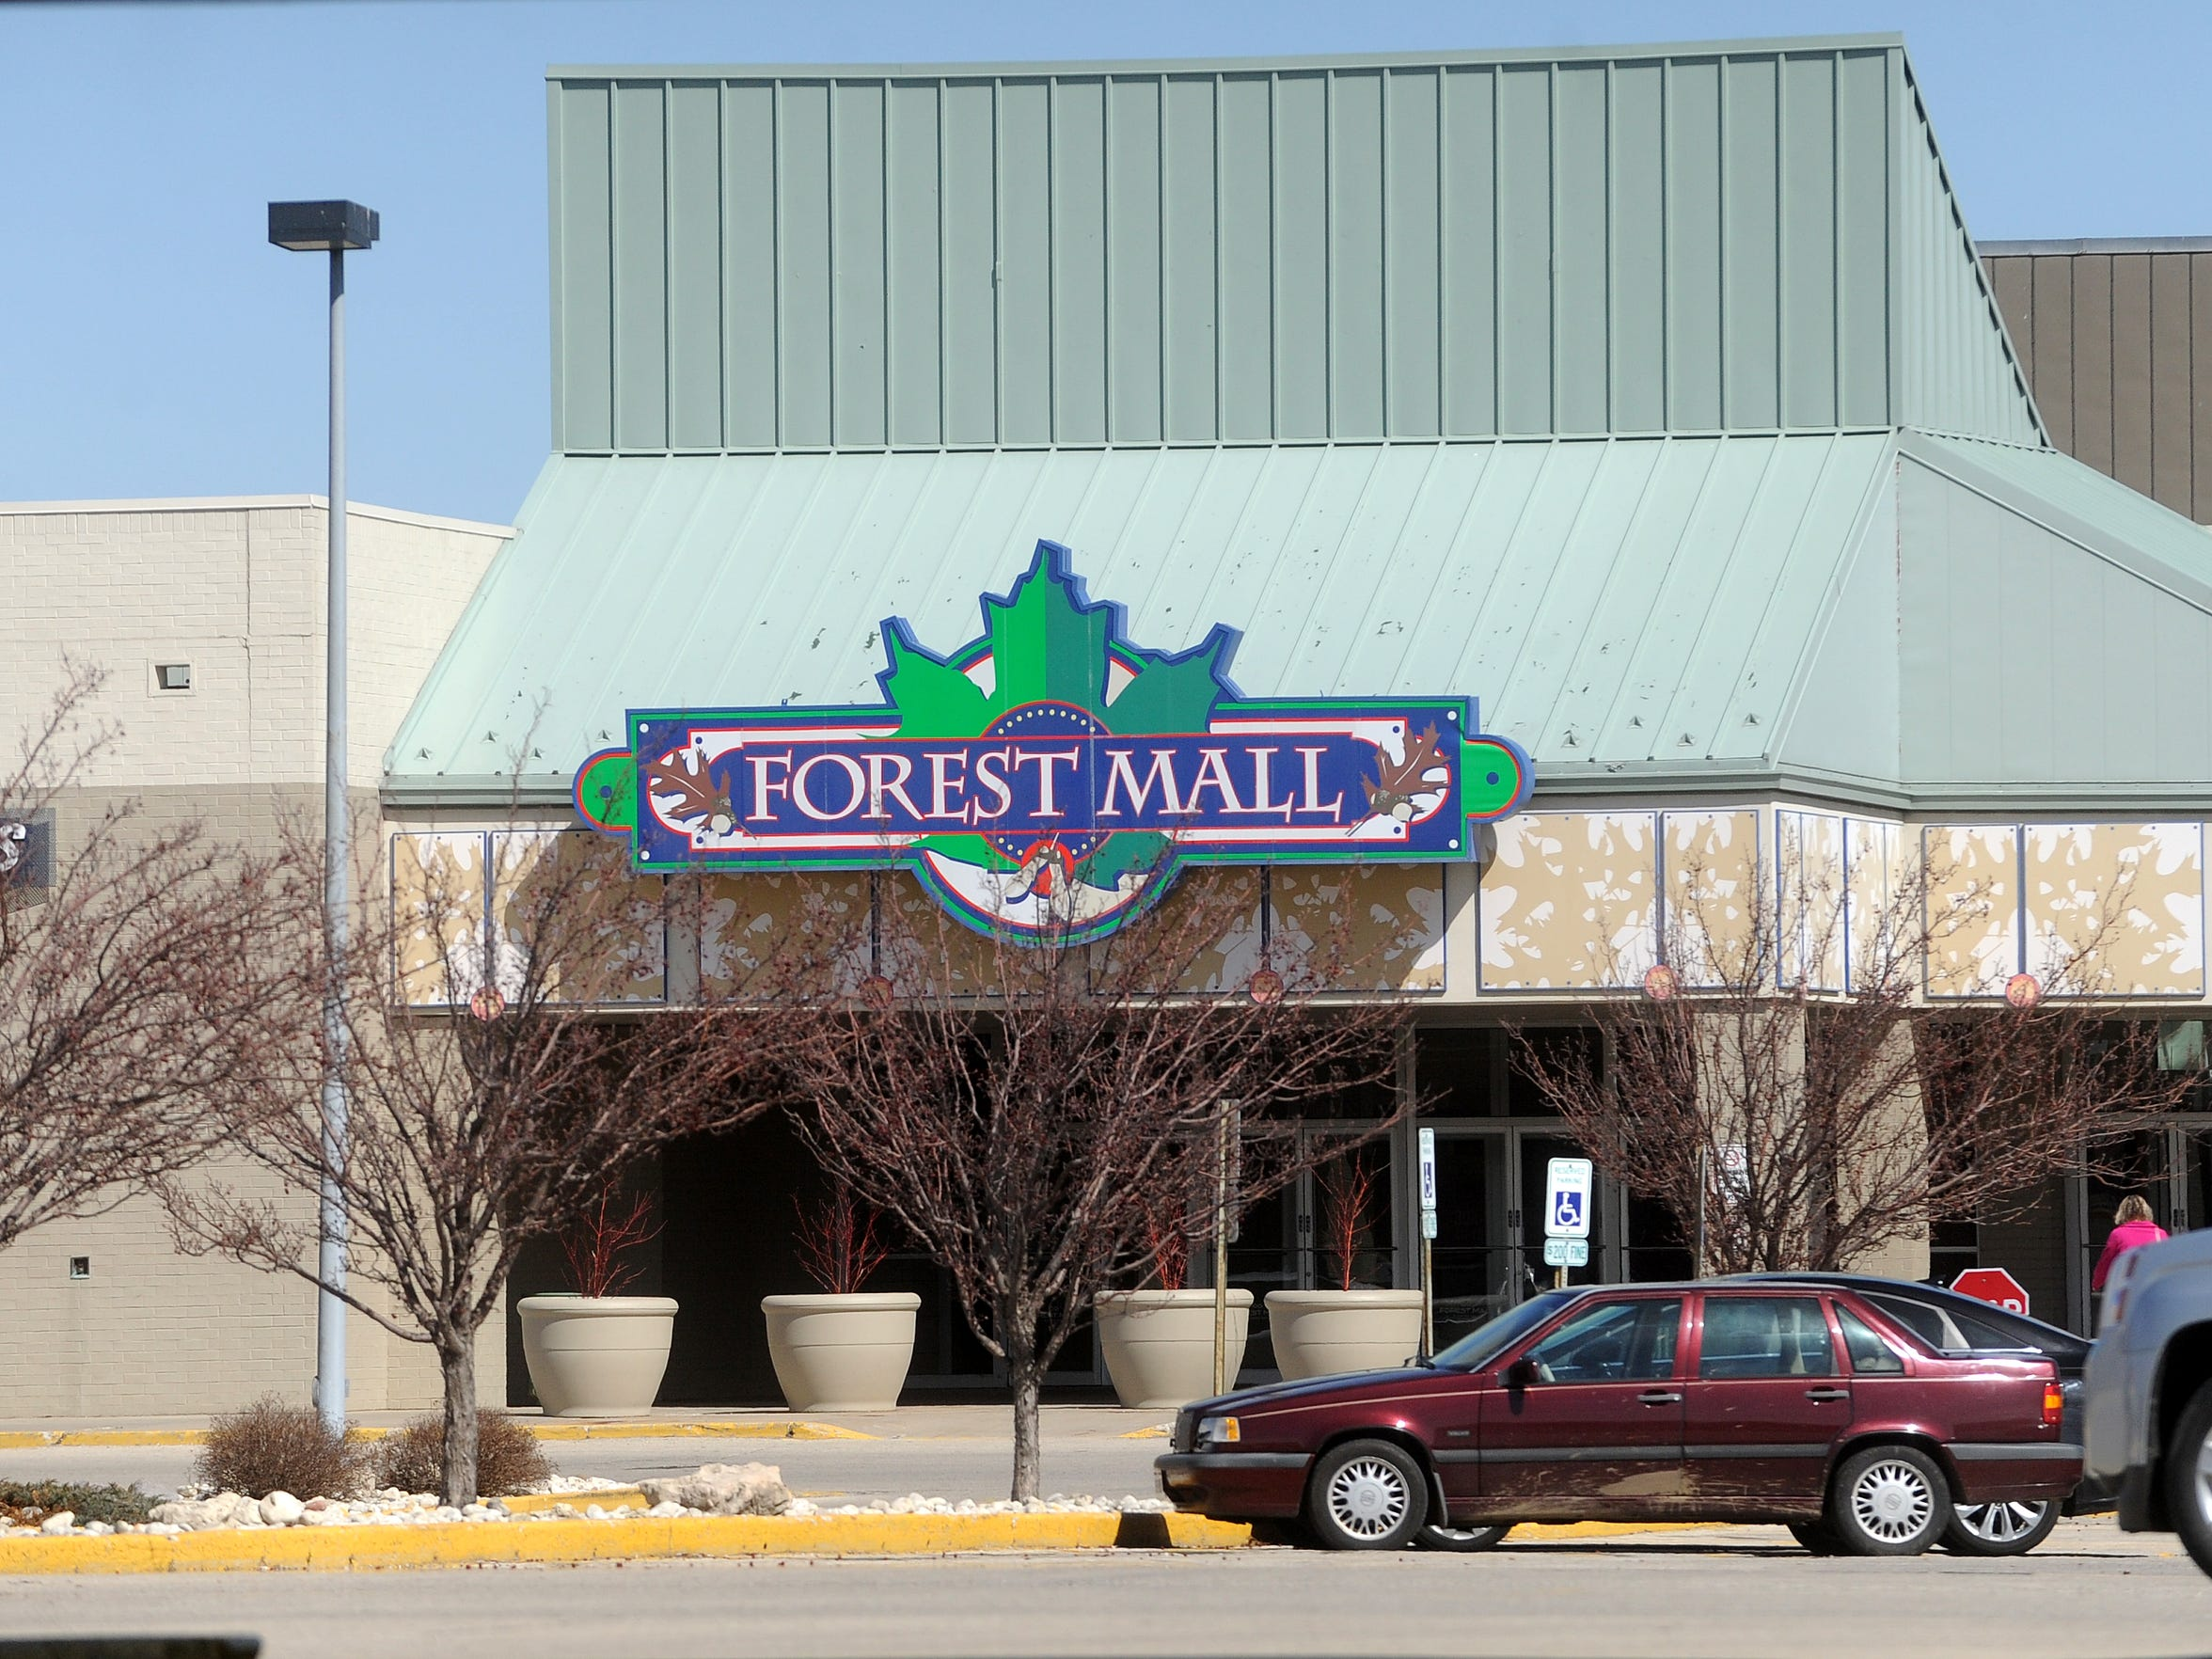 The Forest Mall in Fond du Lac was the site of a bold